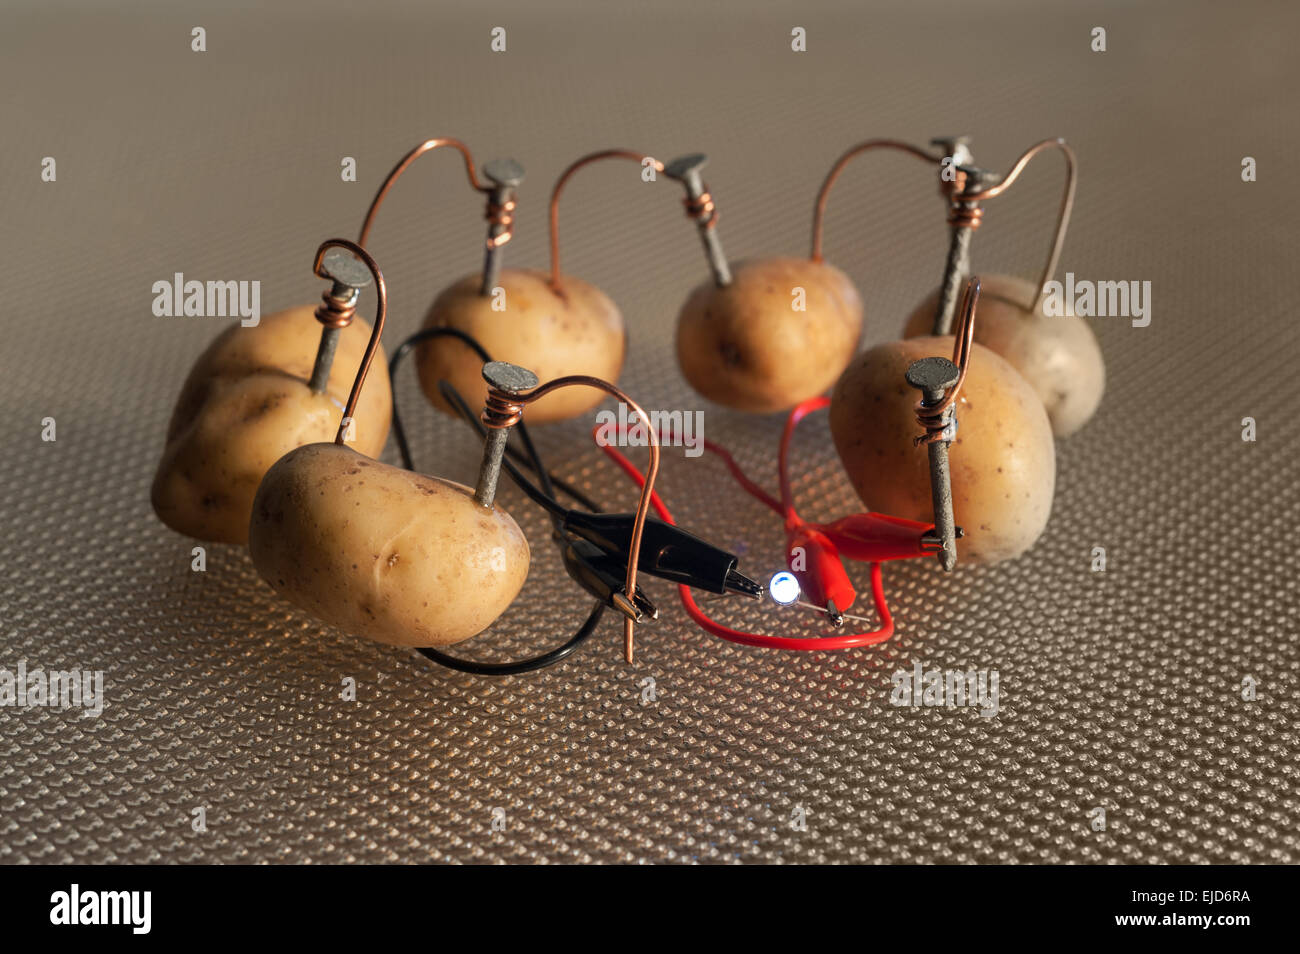 Electrical Current From Potato Great Installation Of Wiring Diagram Battery How To Make A Alternative Energy Source Arranged Is Rh Alamy Com Science Project